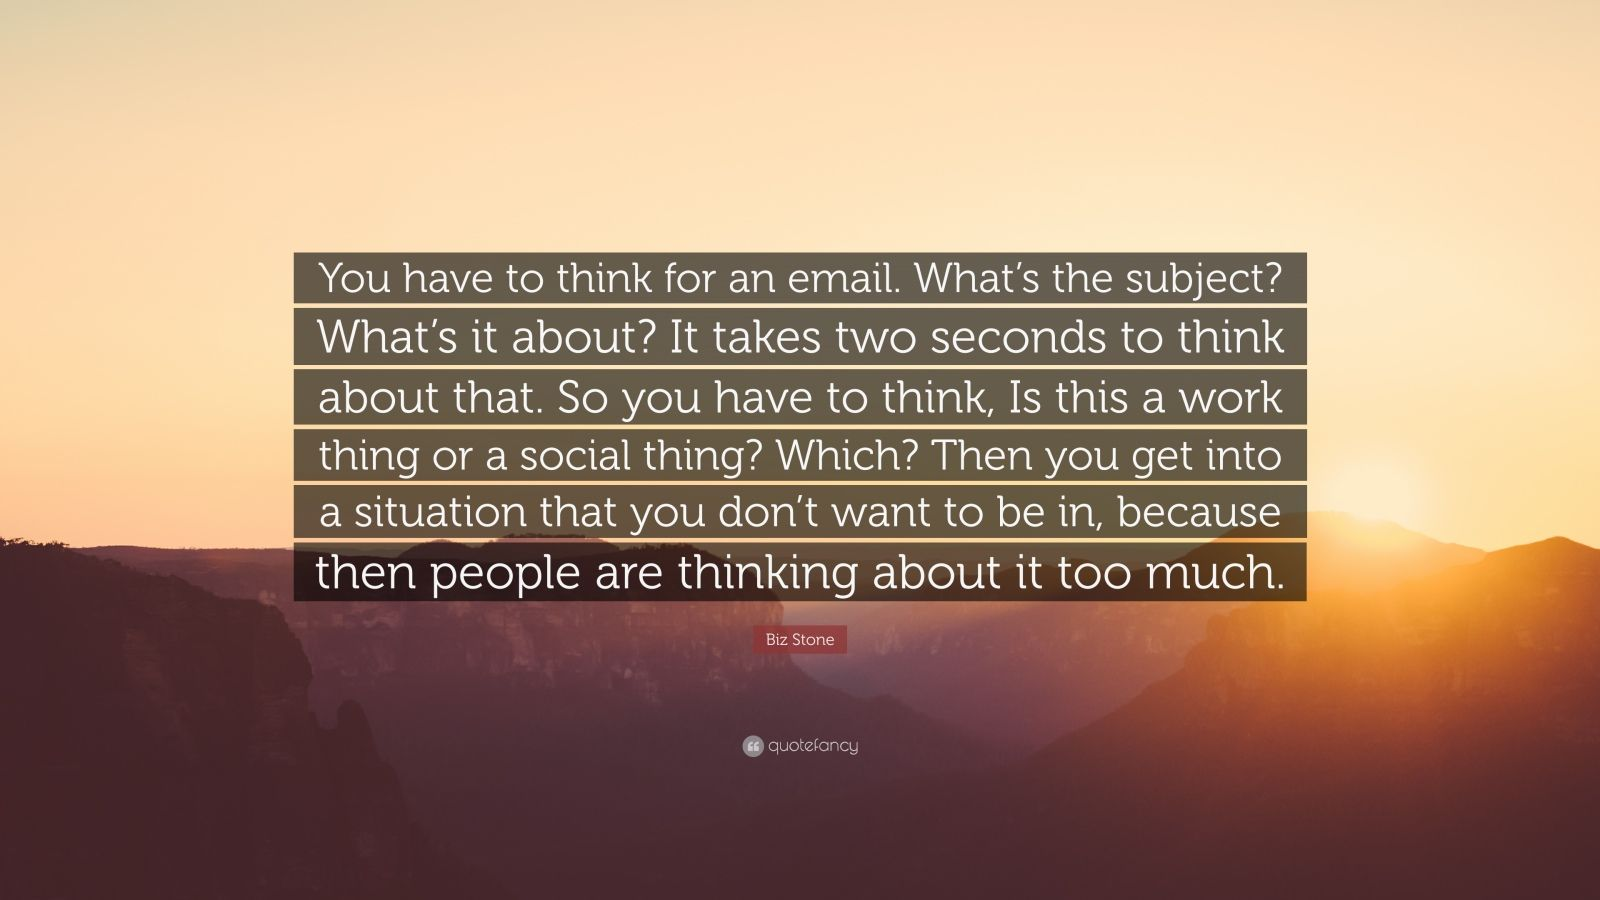 "Biz Stone Quote: ""You have to think for an email. What's the subject? What's it about? It takes two seconds to think about that. So you have to think, Is this a work thing or a social thing? Which? Then you get into a situation that you don't want to be in, because then people are thinking about it too much."""